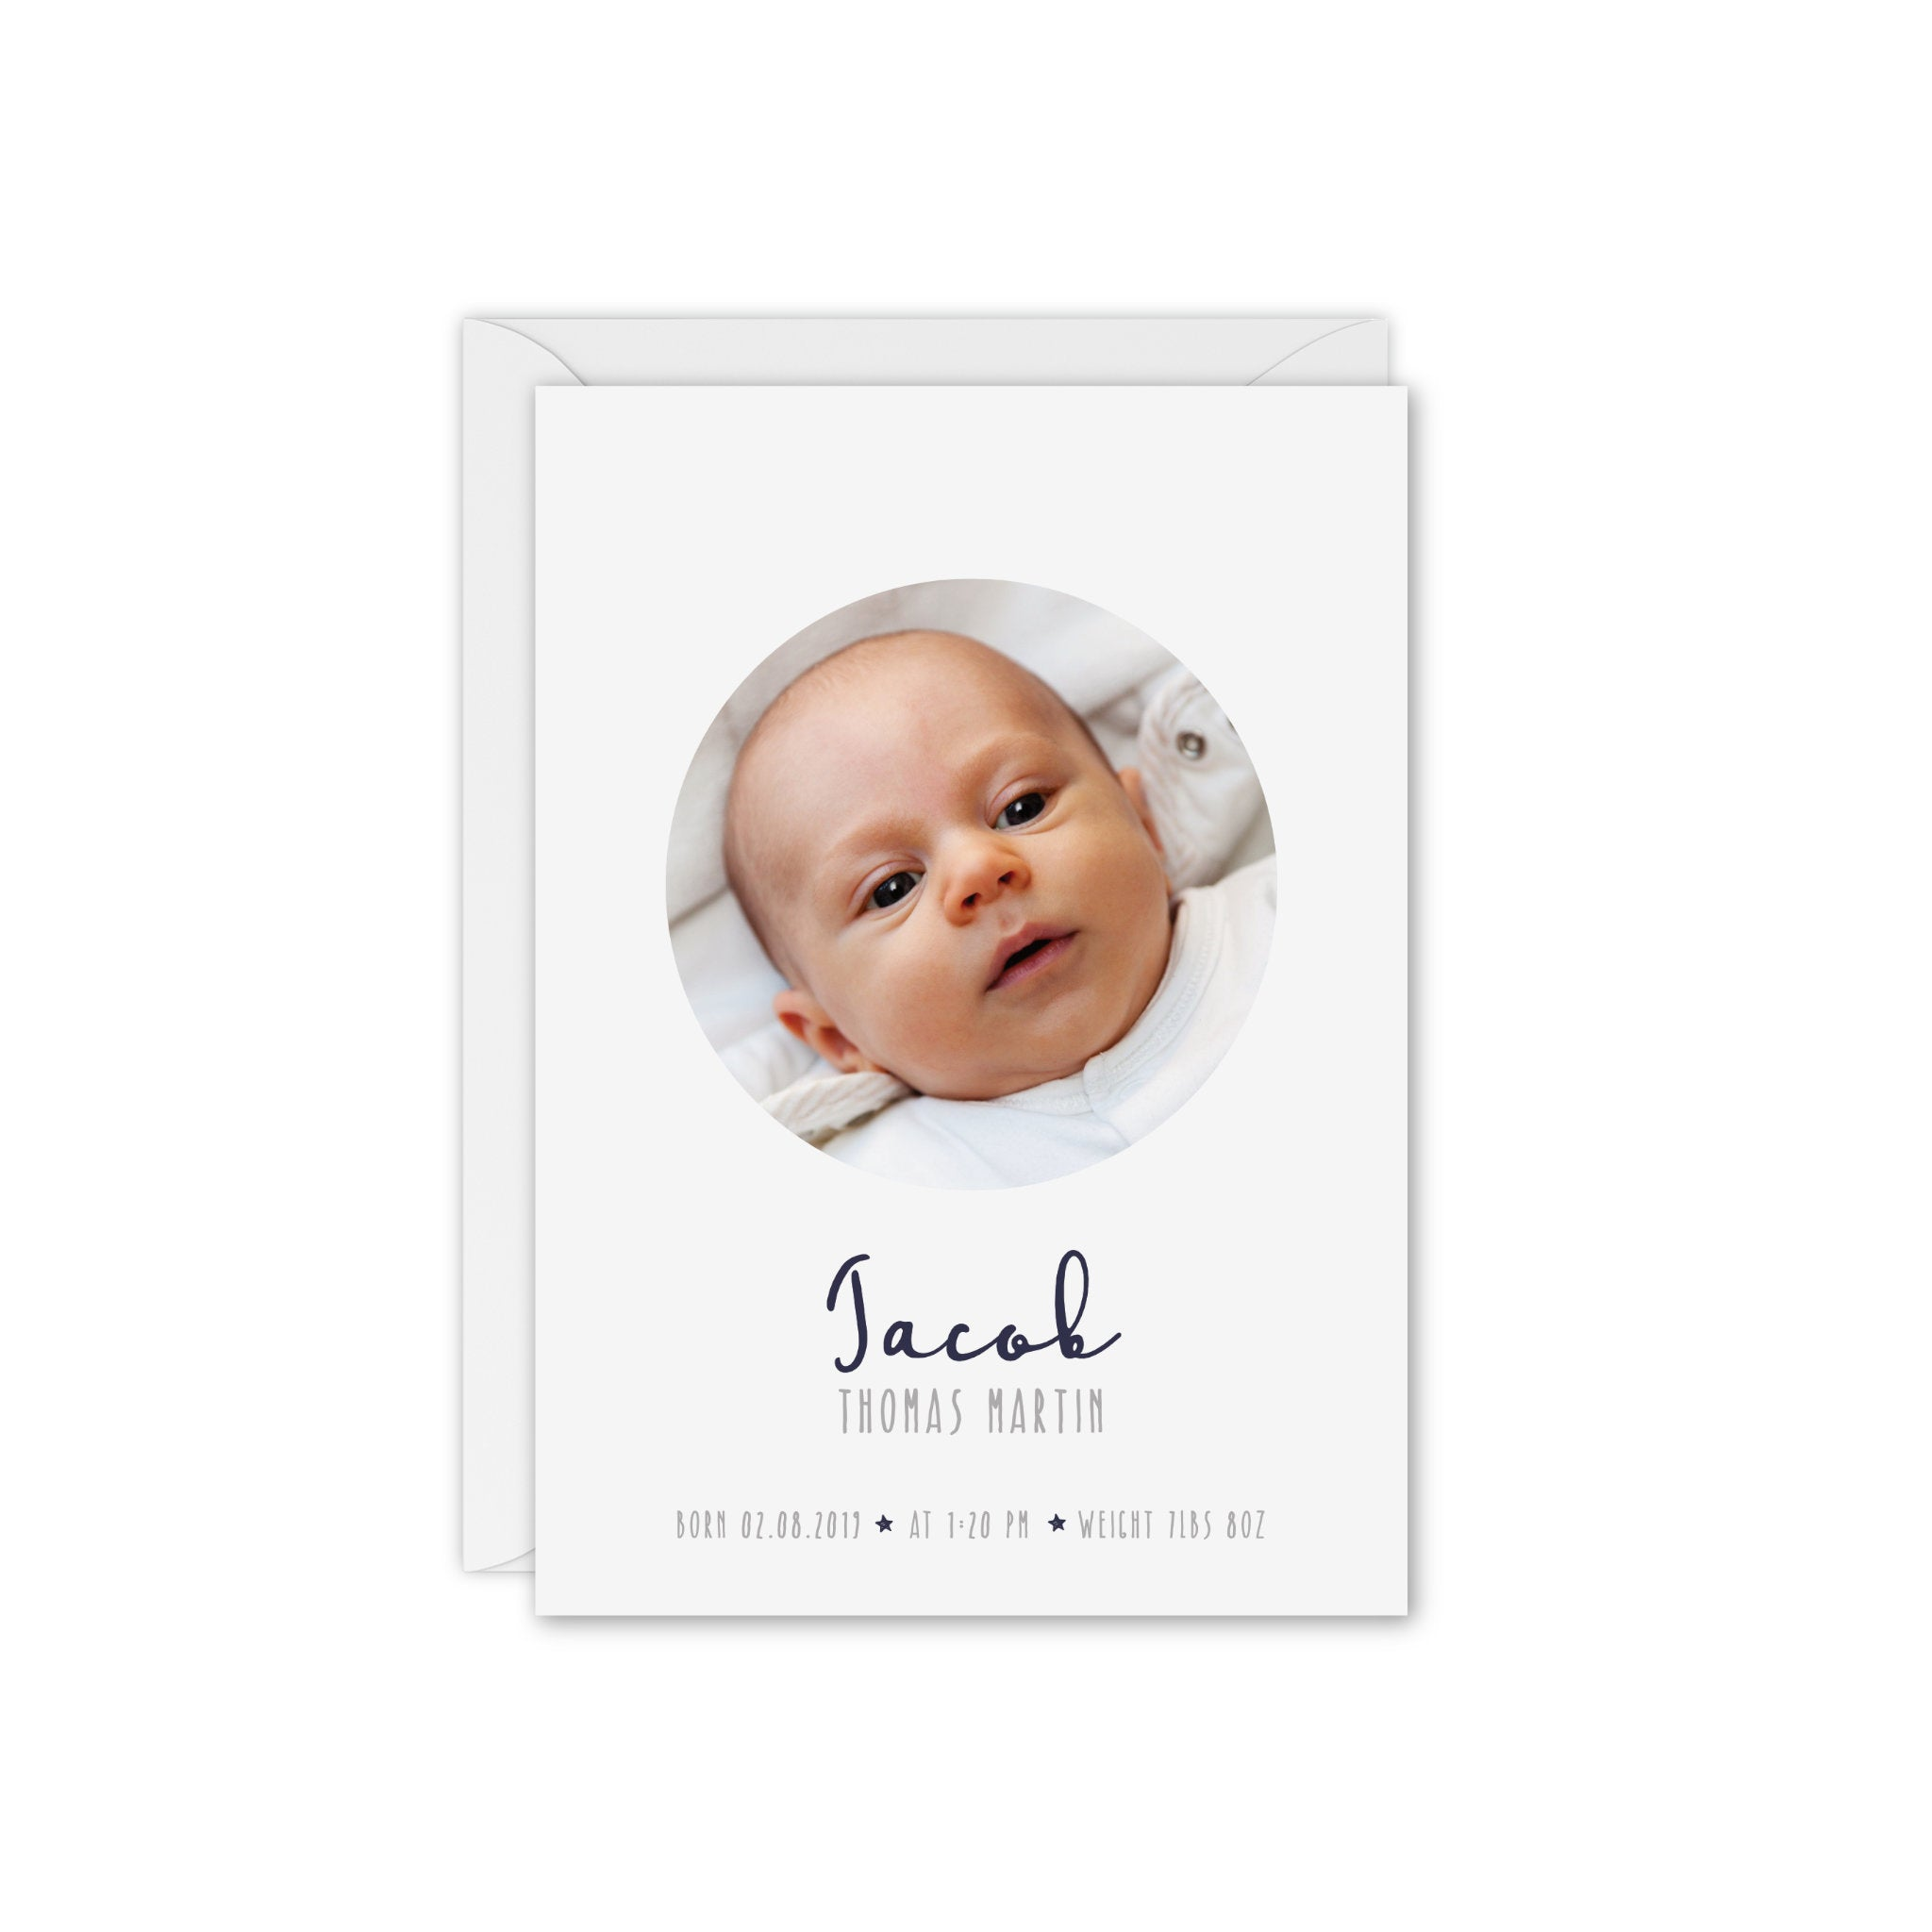 Little Dreamer Baby Photo Thank You Card - Navy and White